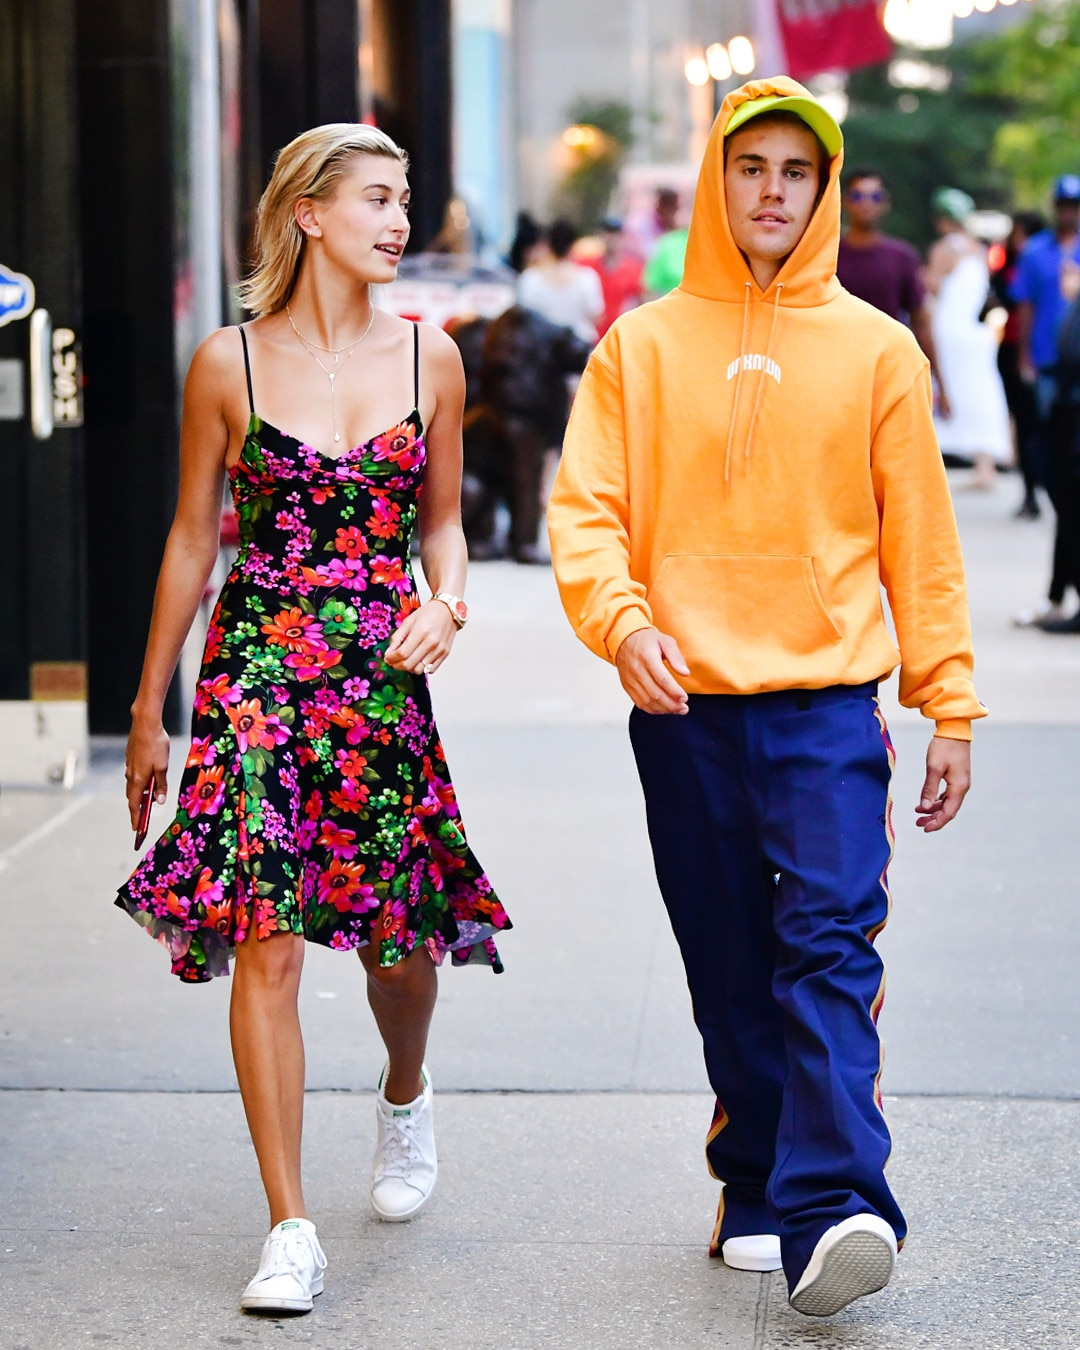 Justin Bieber Opens Up About Crying With Hailey Baldwin